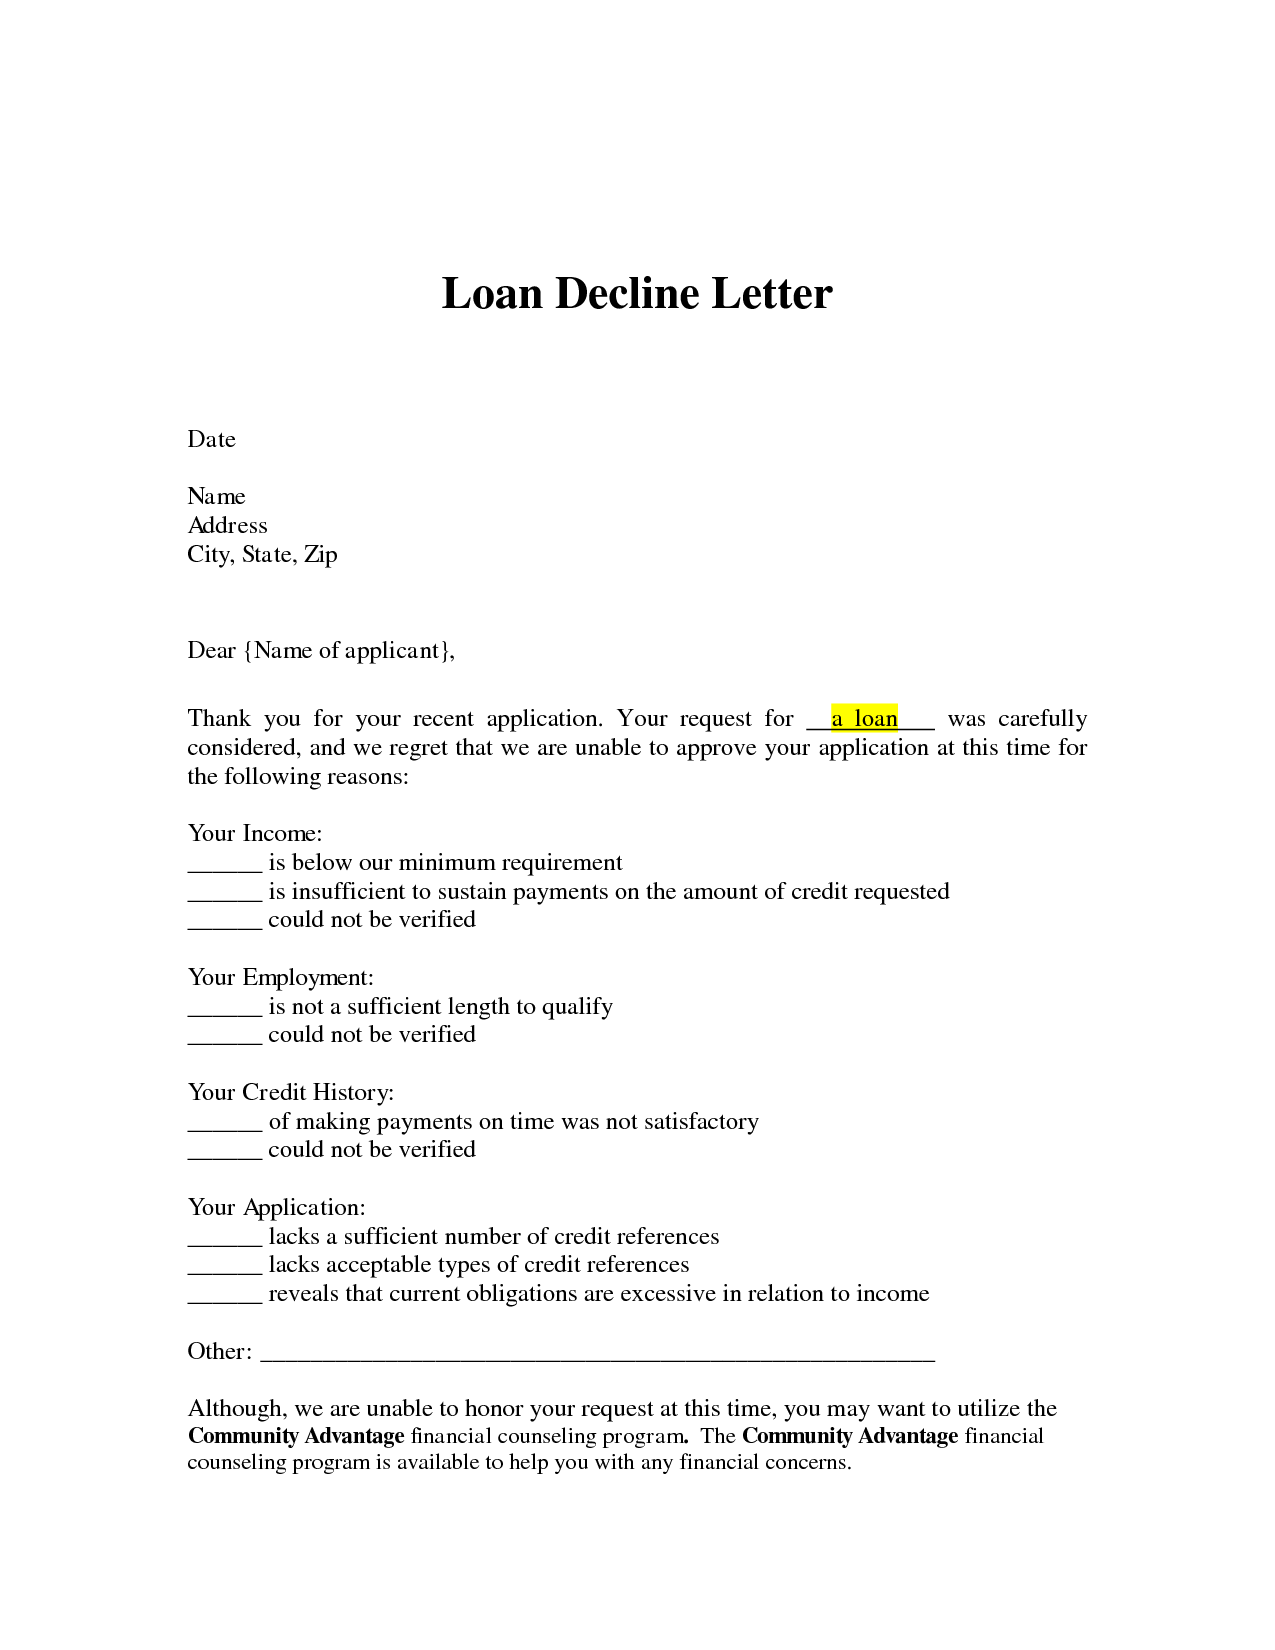 loan denial letter template loan decline letter loan denial letter arrives you can